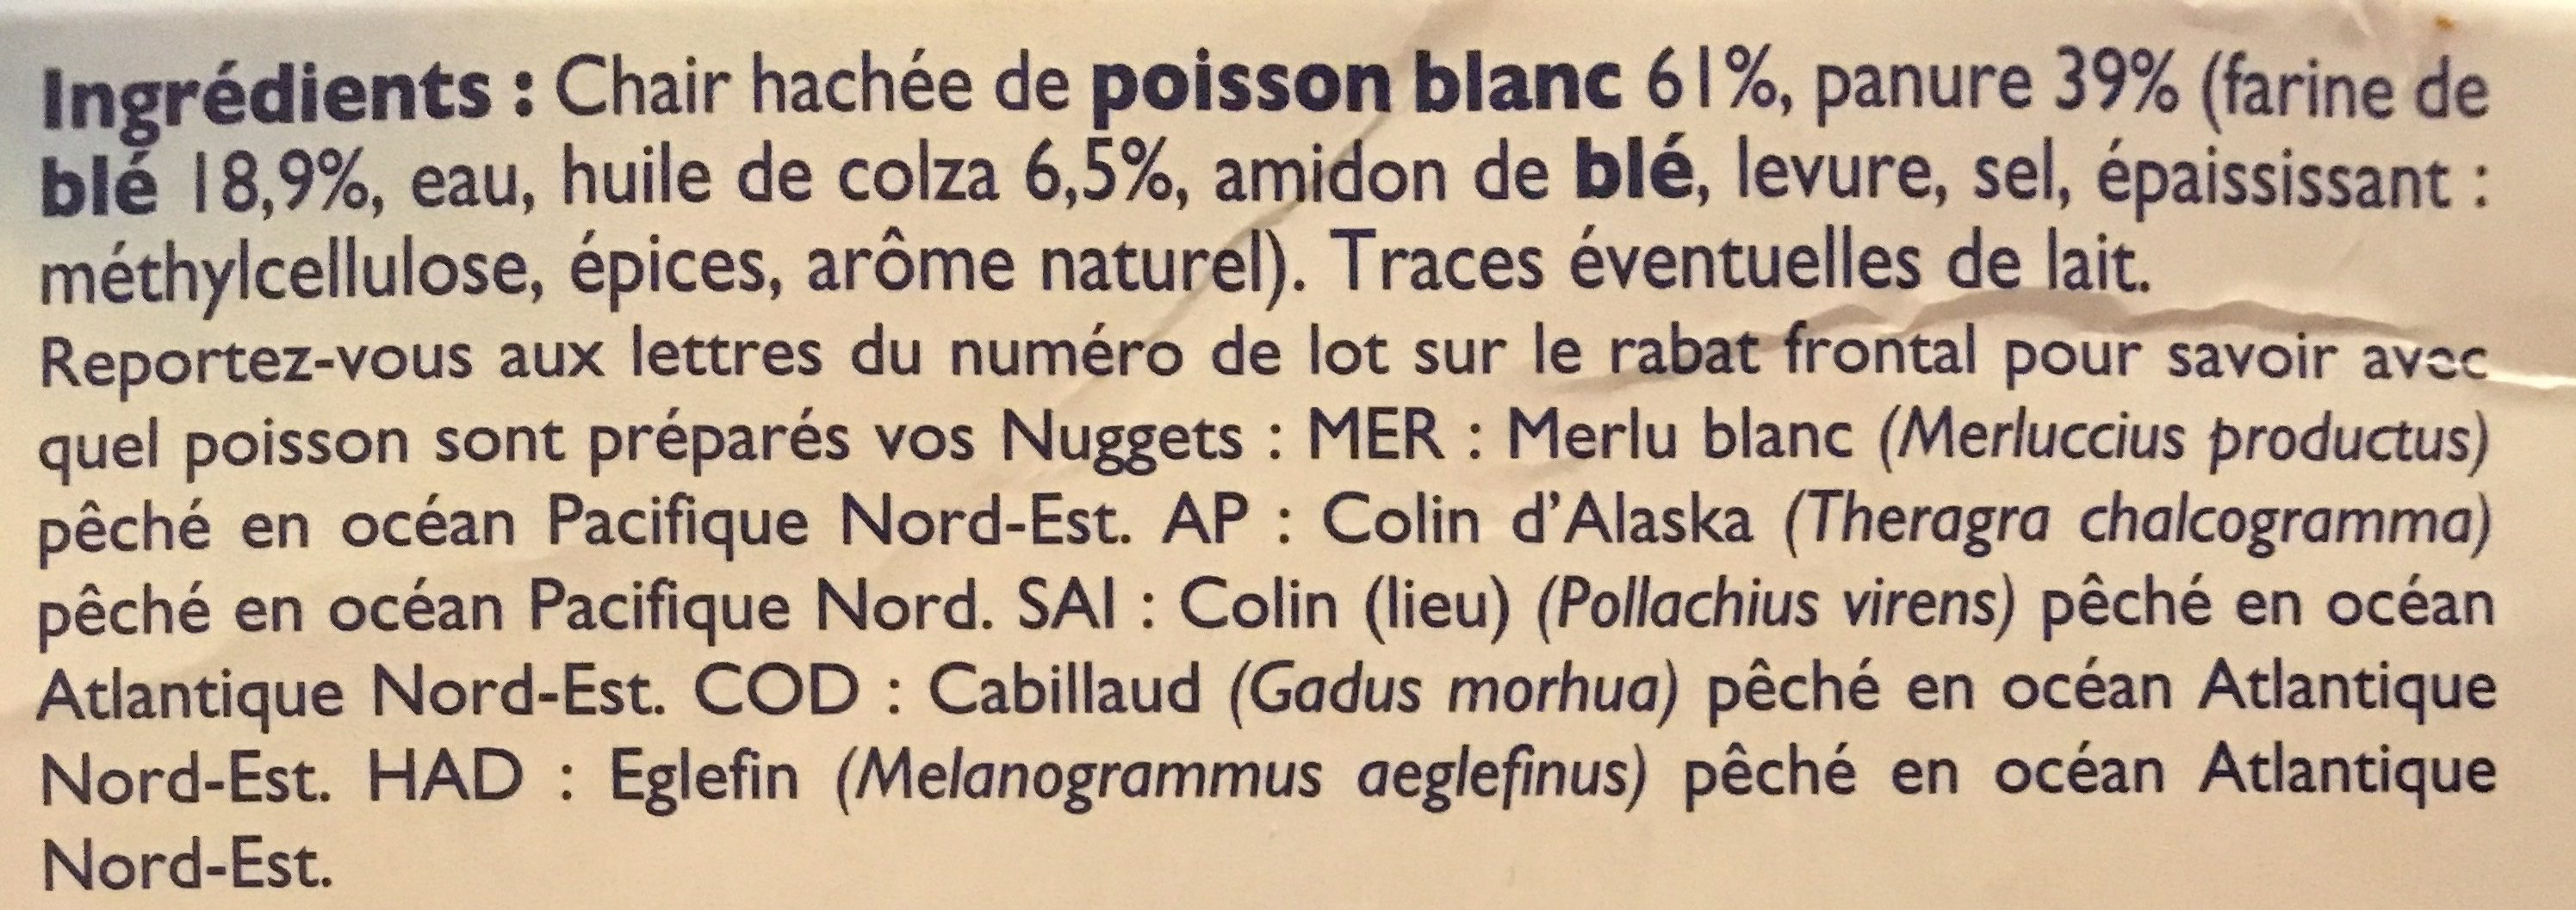 Nuggets de poisson - Ingredients